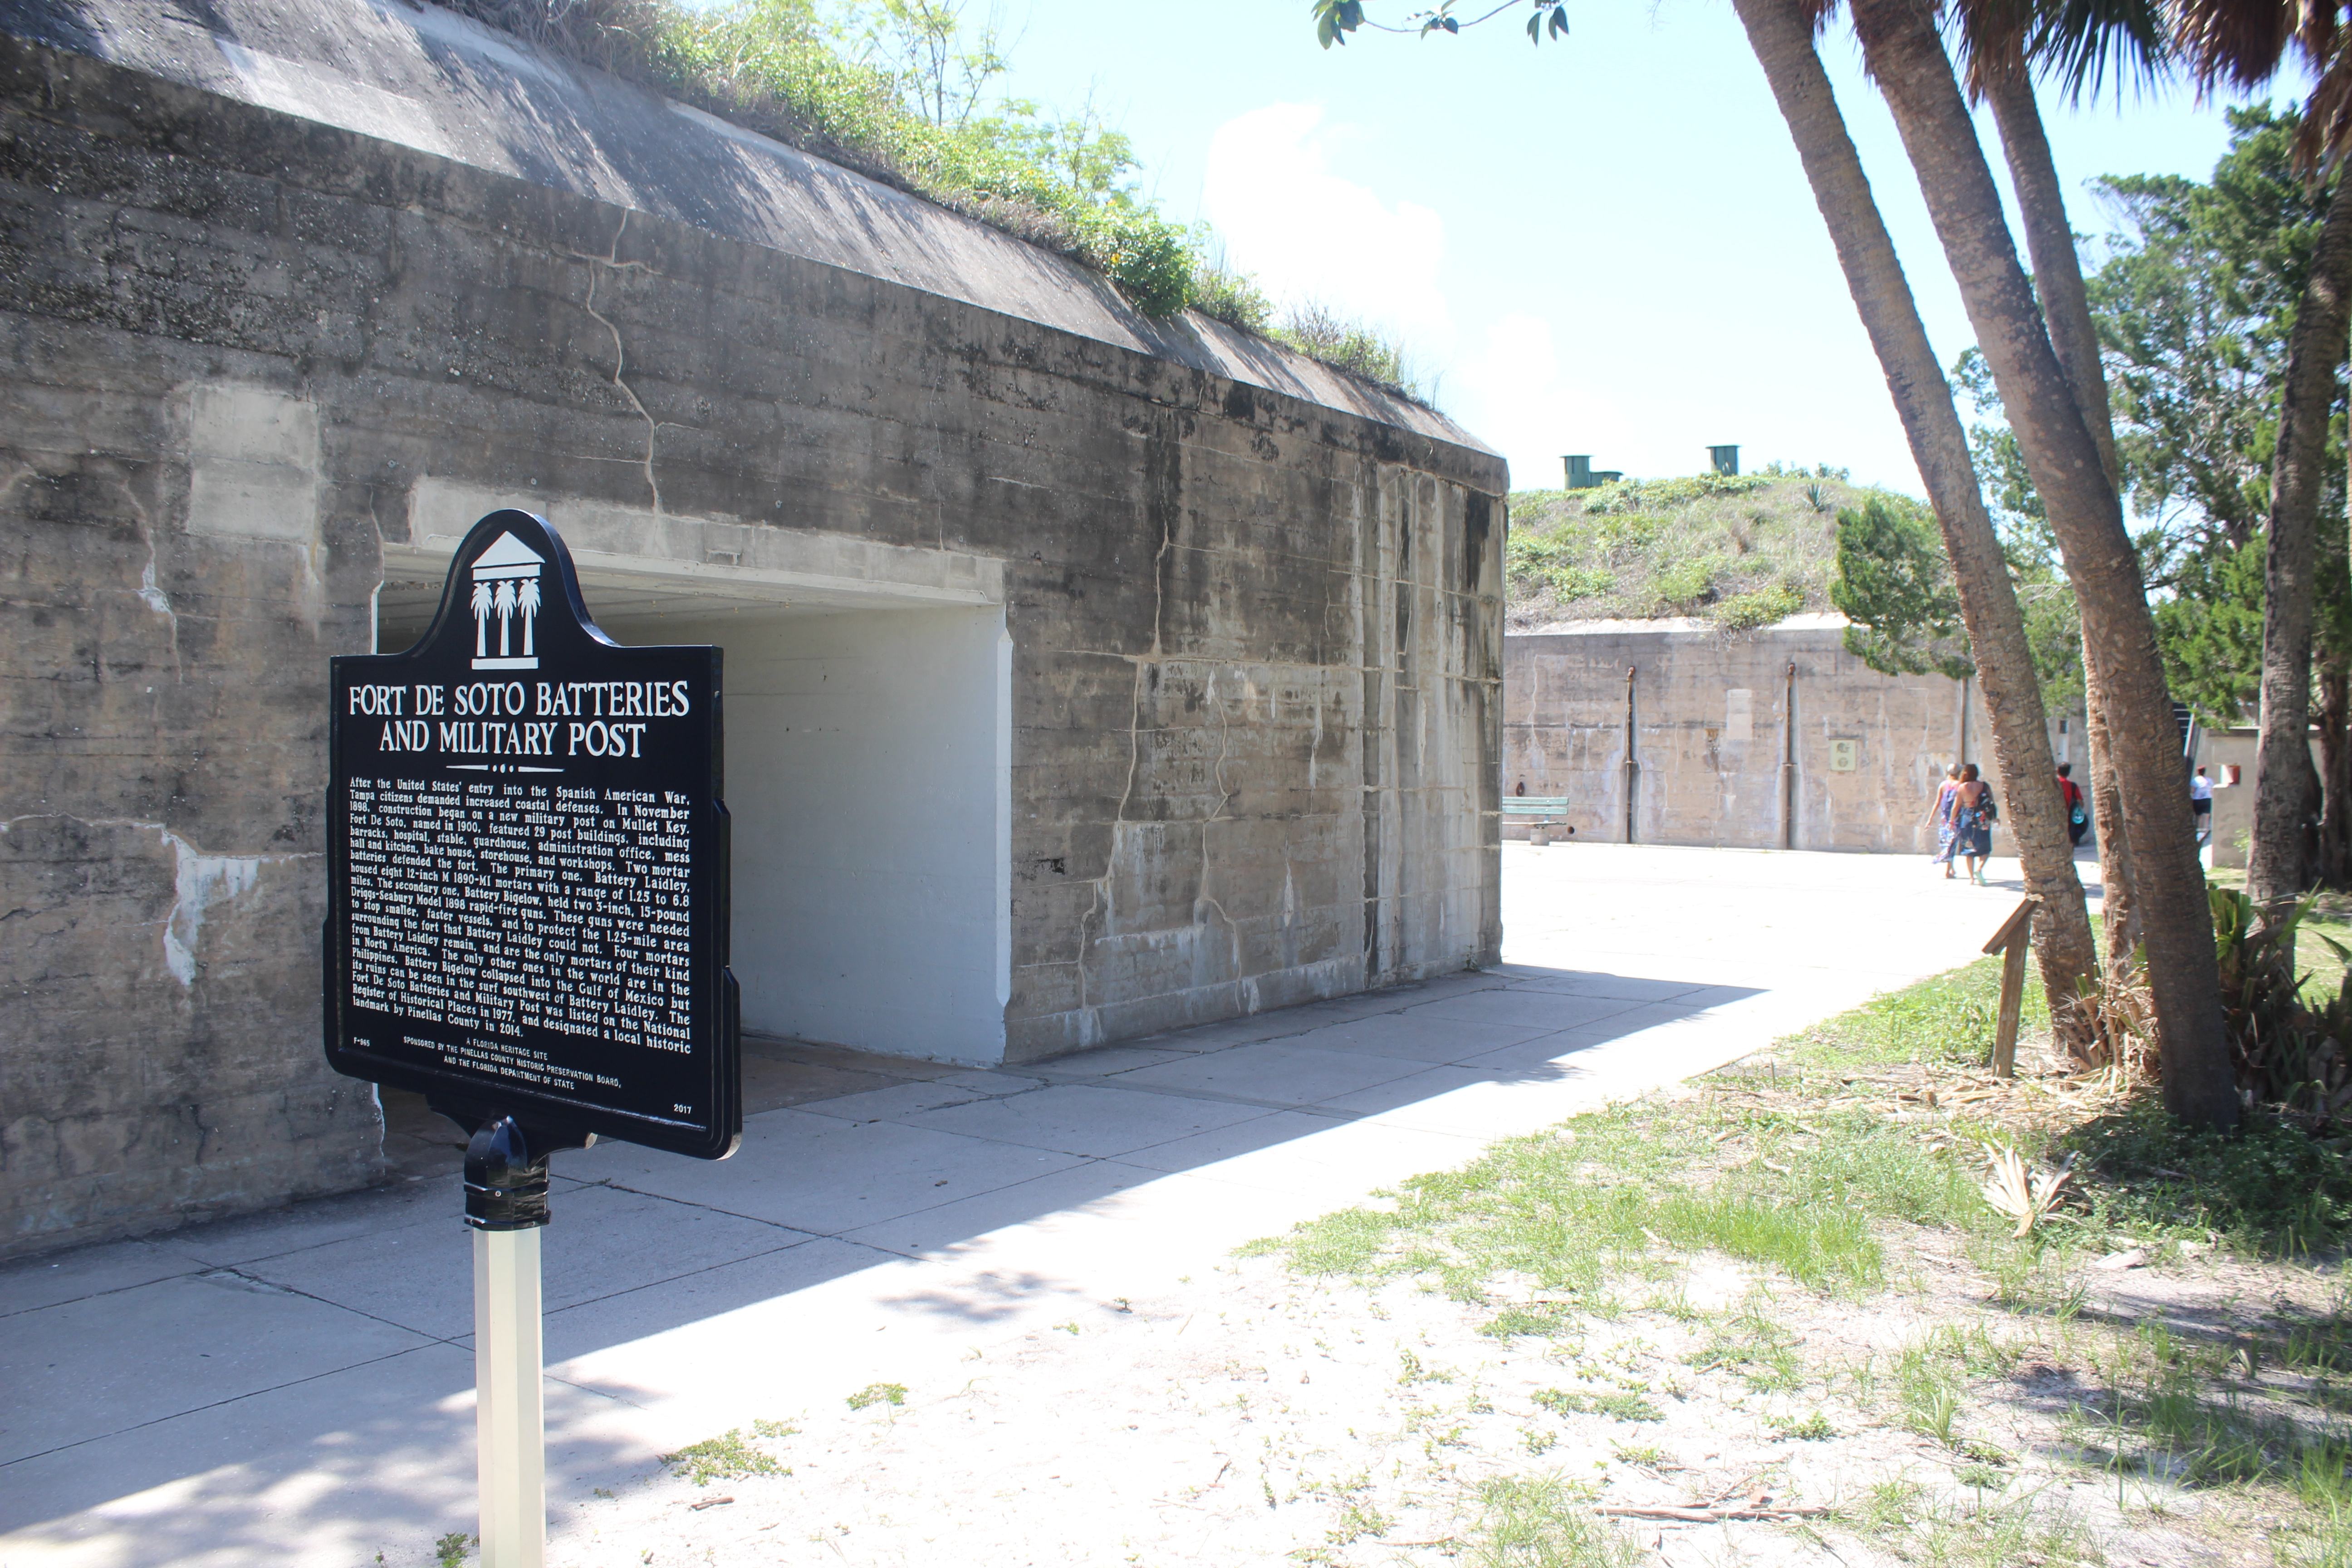 Fort De Soto Batteries and Military Post Marker and part of fort